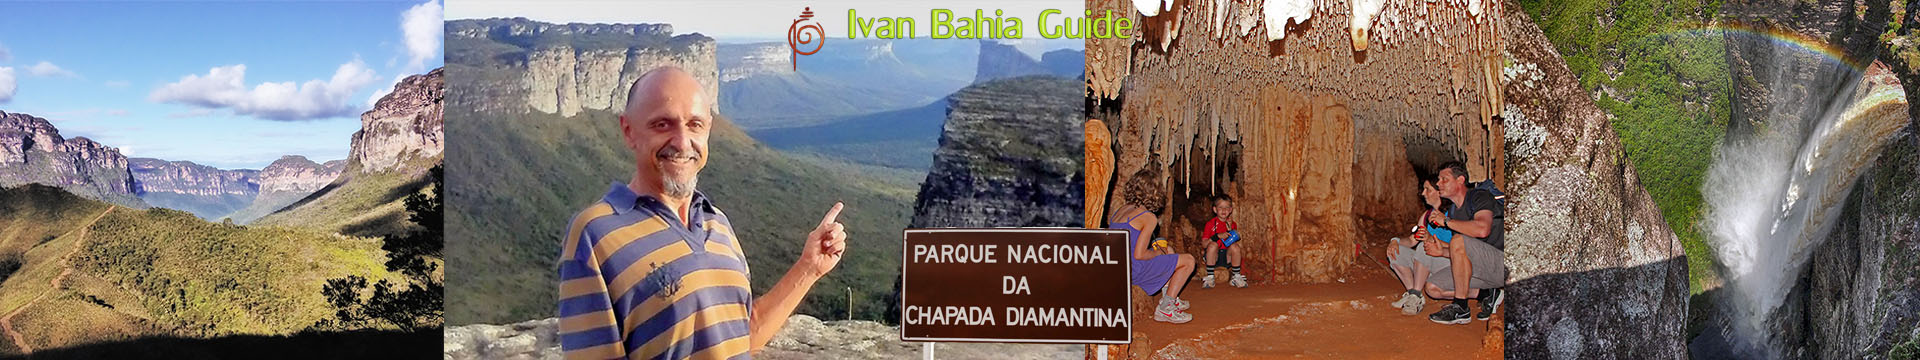 Chapada Diamantina National Park (aka 'the Brazilian Grand Canyon') mountain views